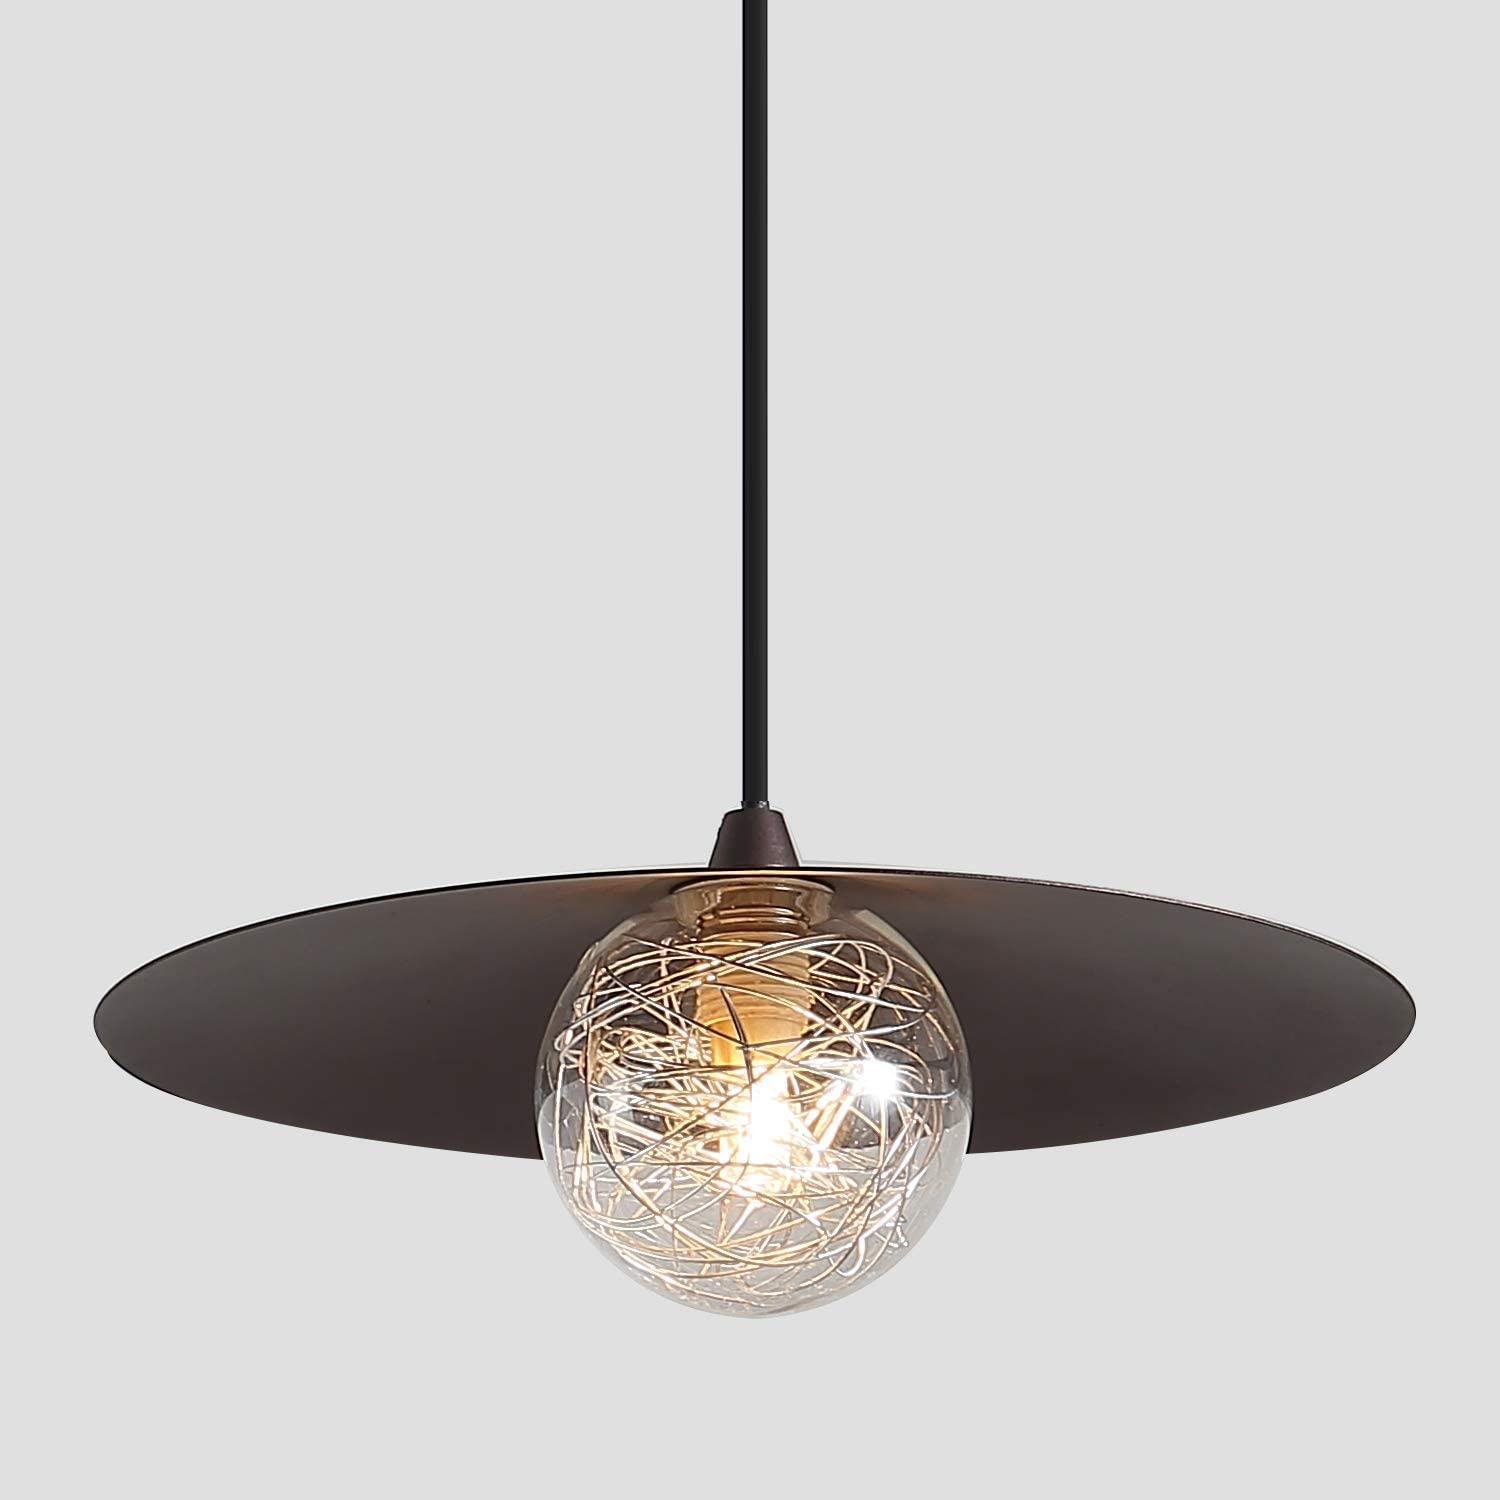 Modern Mini Pendant Lighting with Bulbs, Oil Rubbed Bronze, 1 Light Clear Glass Aluminum Wire Inner Shade Industrial Hanging Light Fixture for Kitchen Island Bar